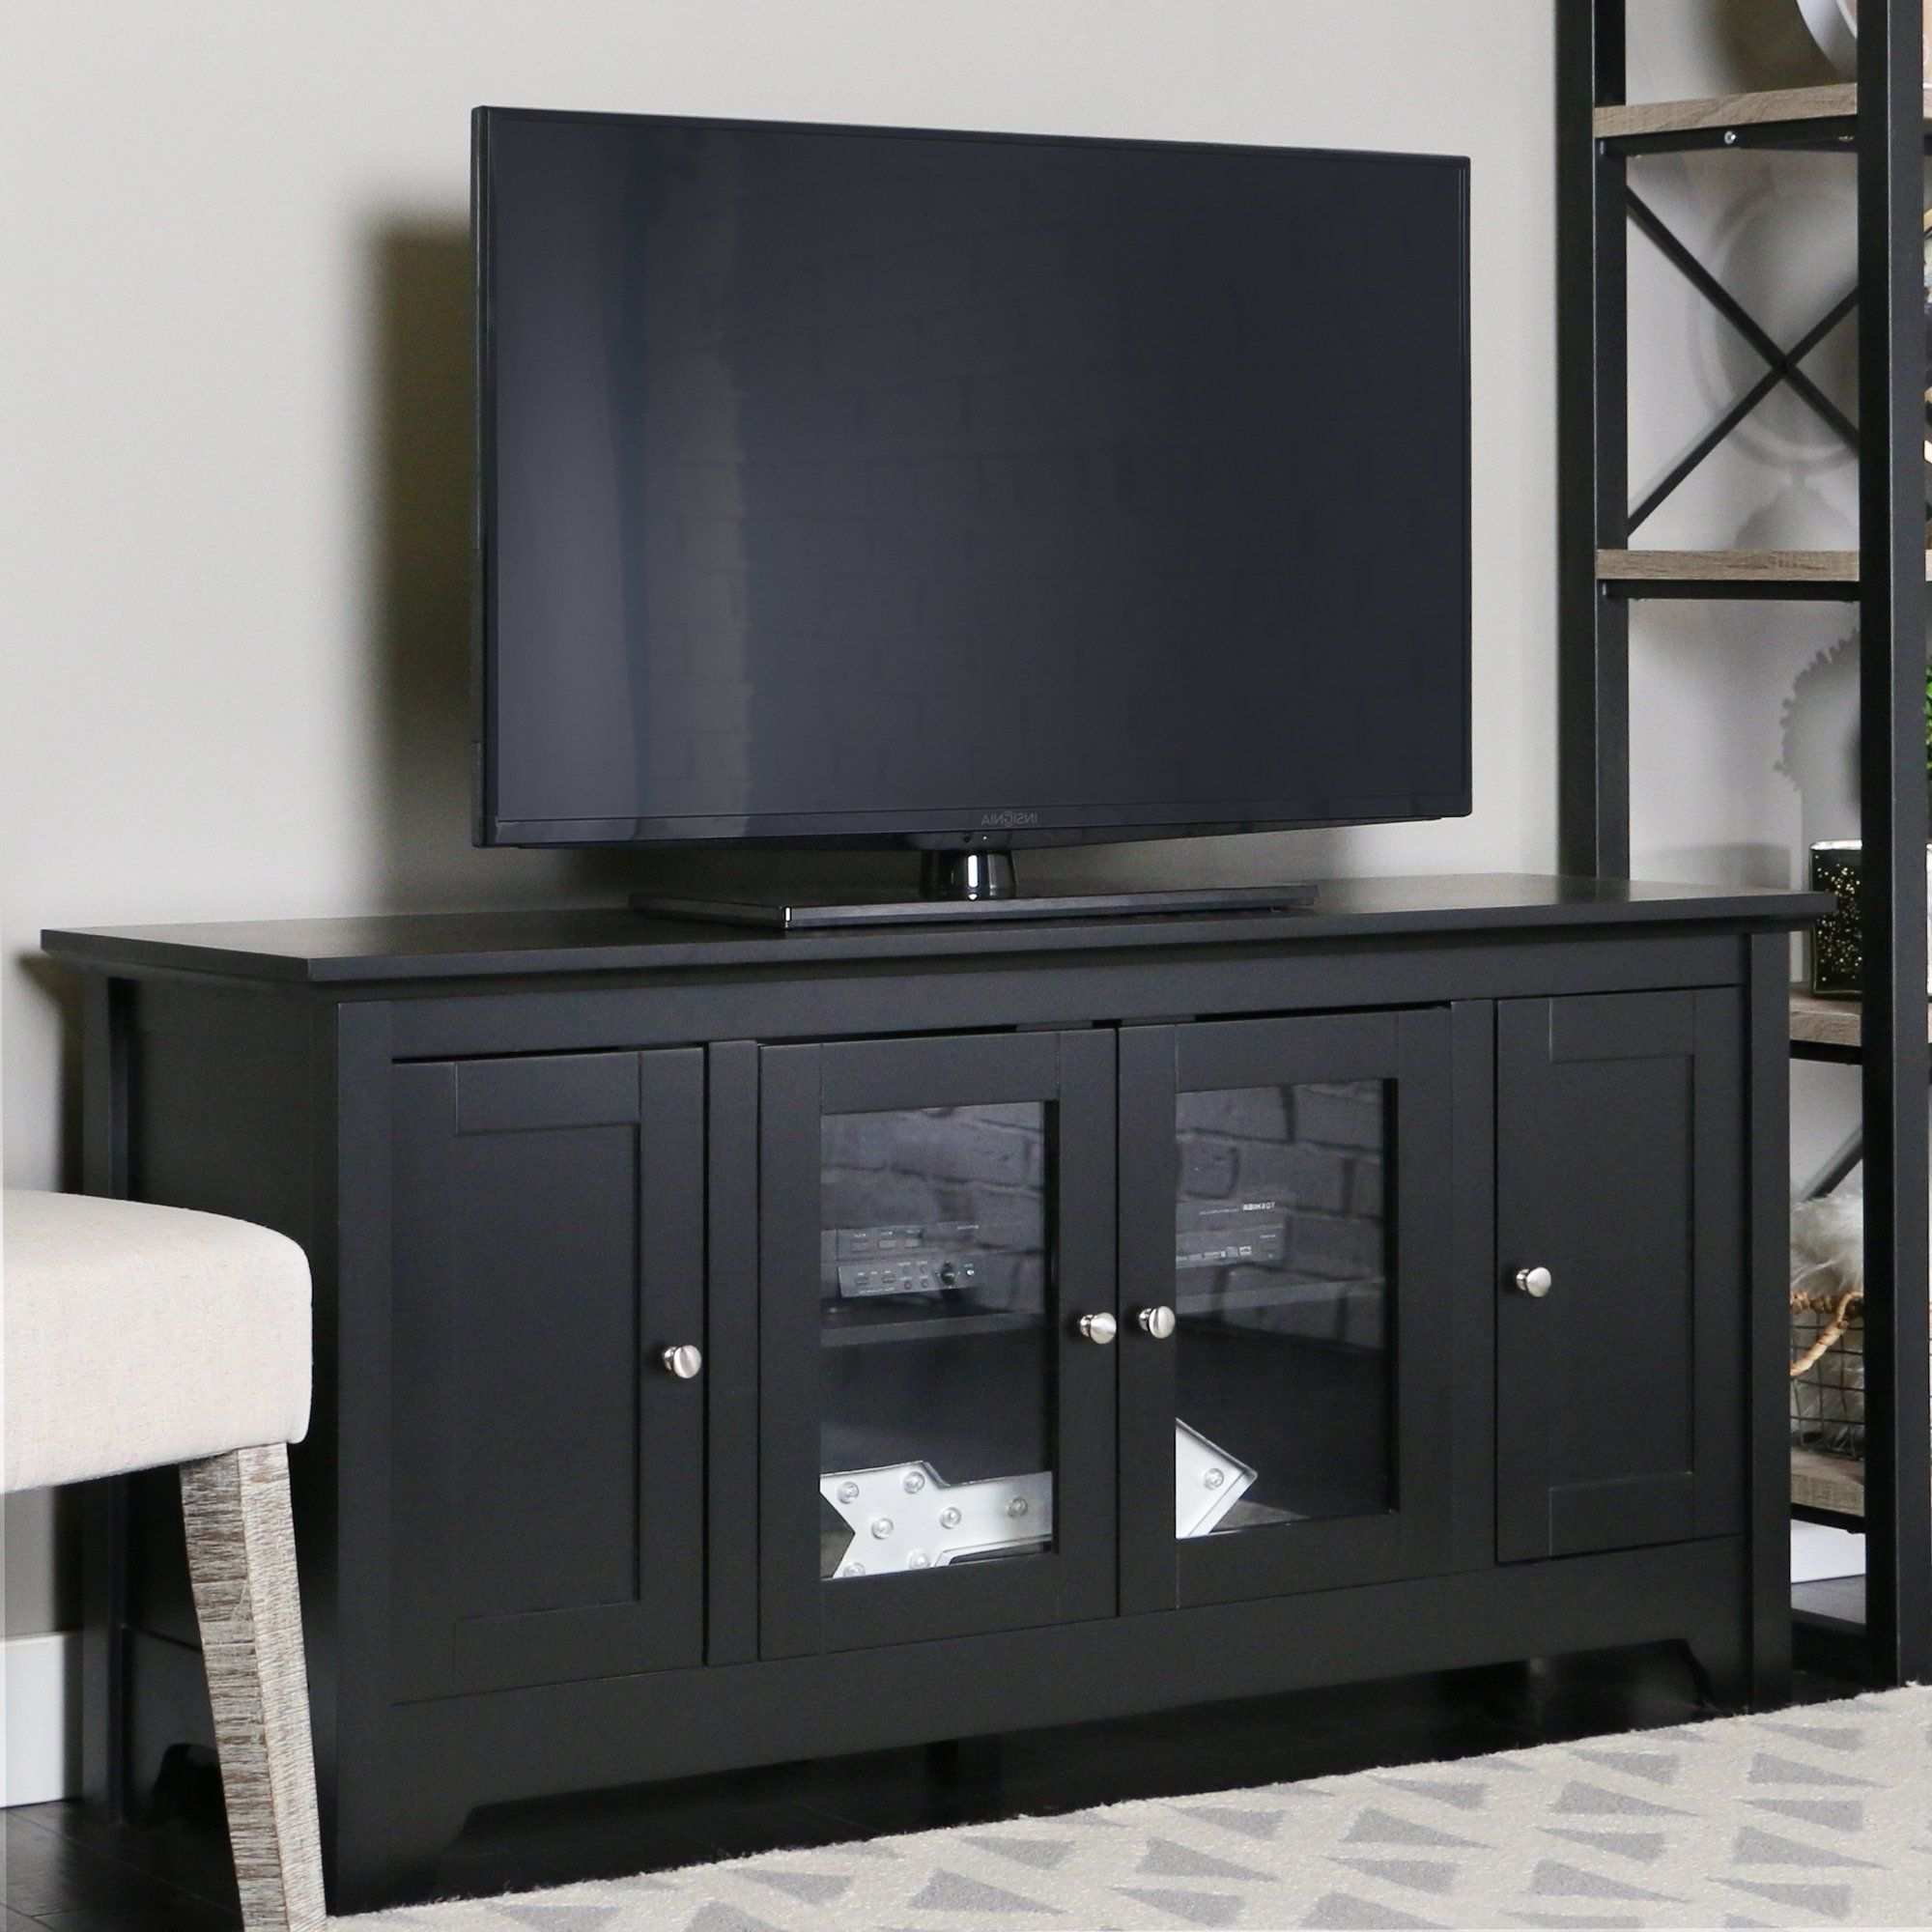 53 tv stand console black 53 x 16 x 25h walker edison in 2018 rh pinterest com